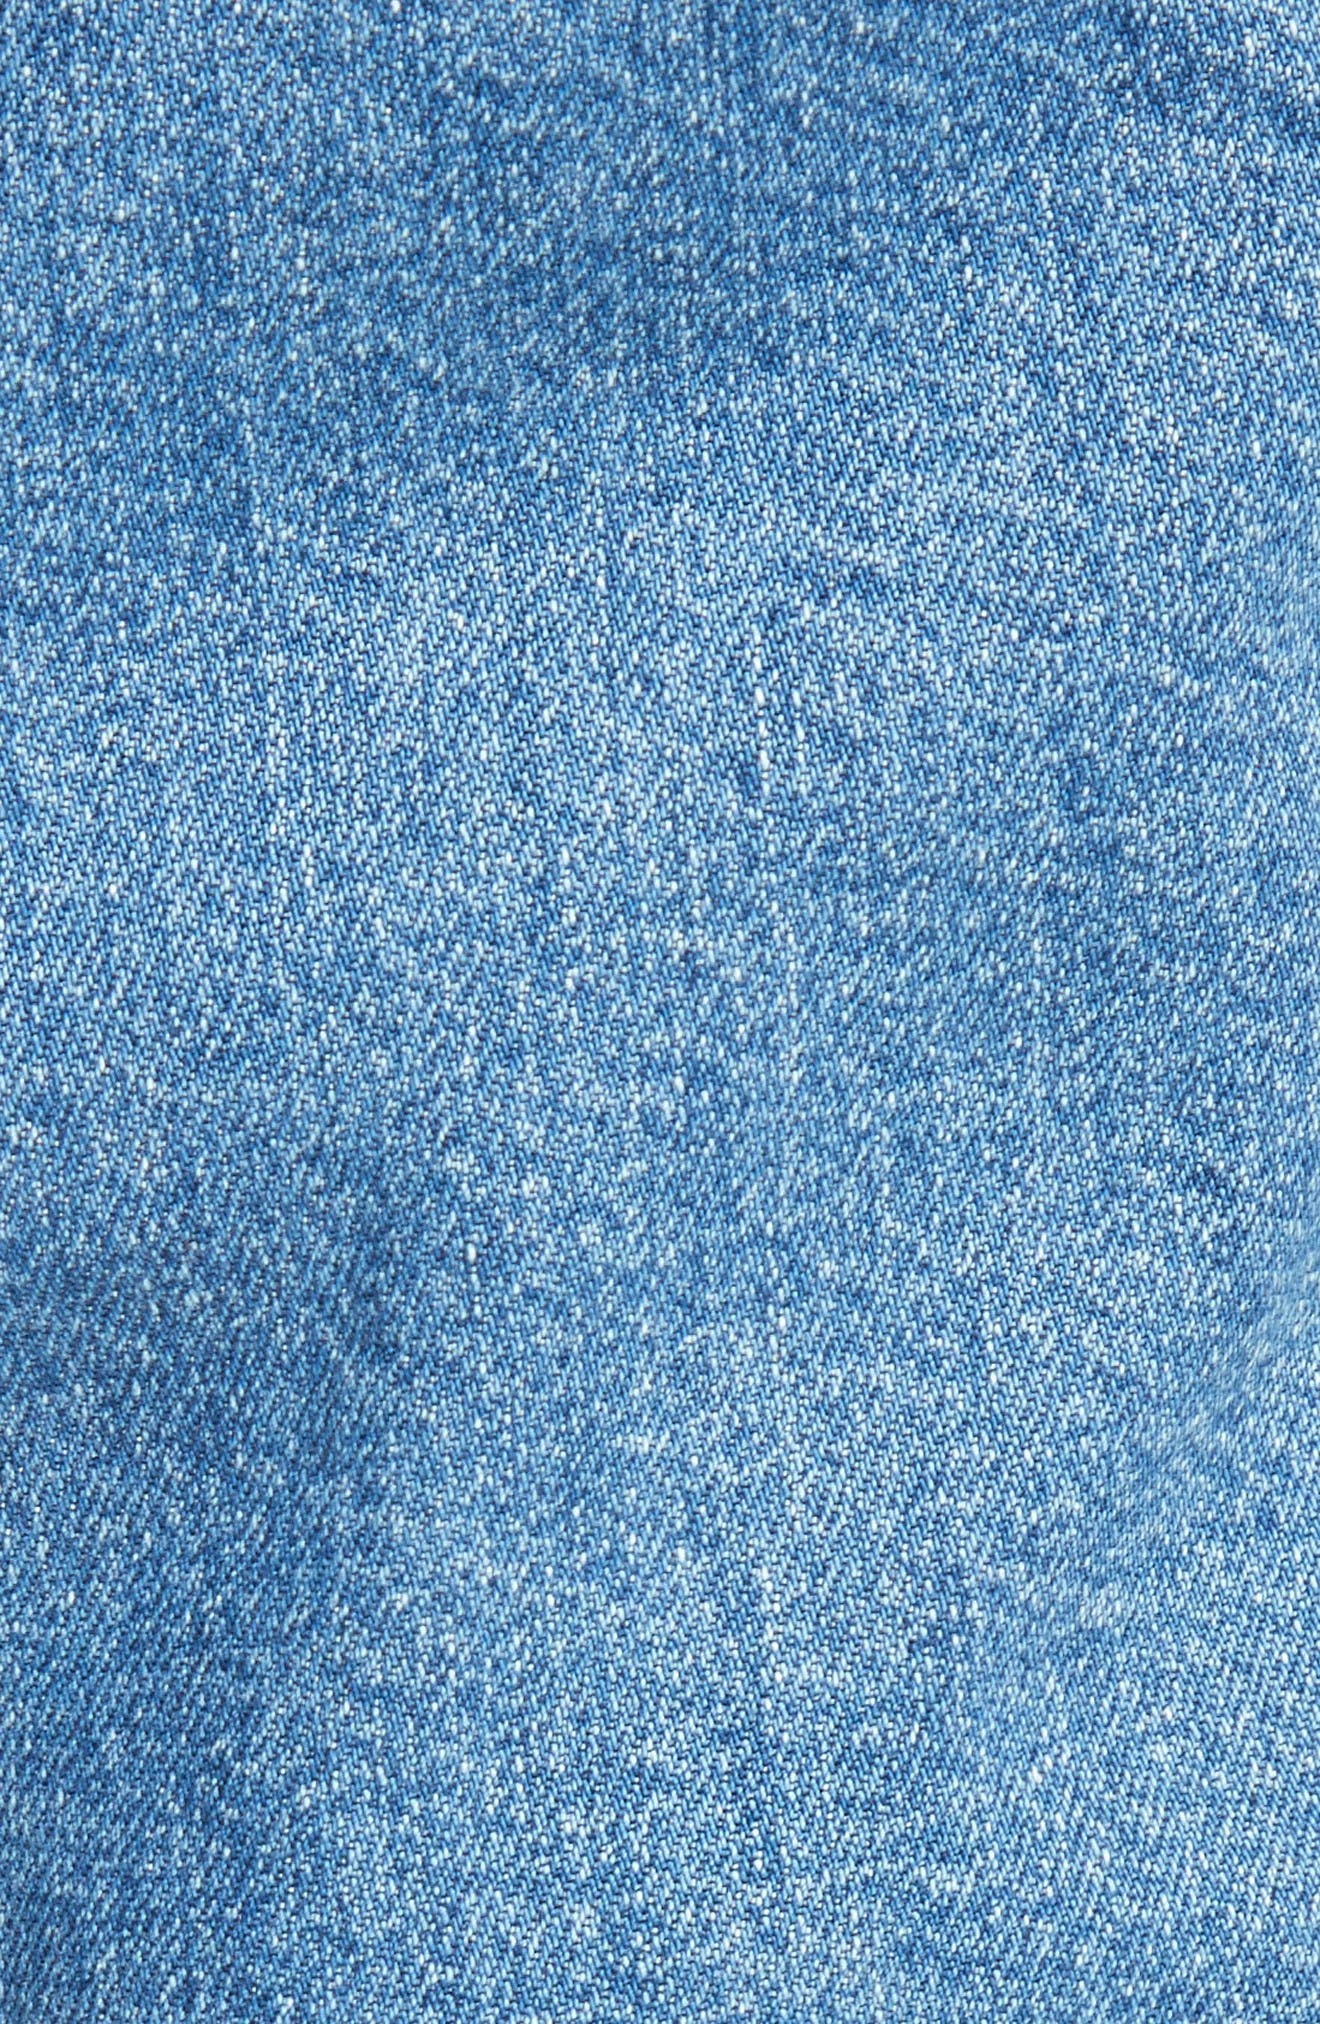 Xenia Ruched Crop Jeans,                             Alternate thumbnail 7, color,                             Blue